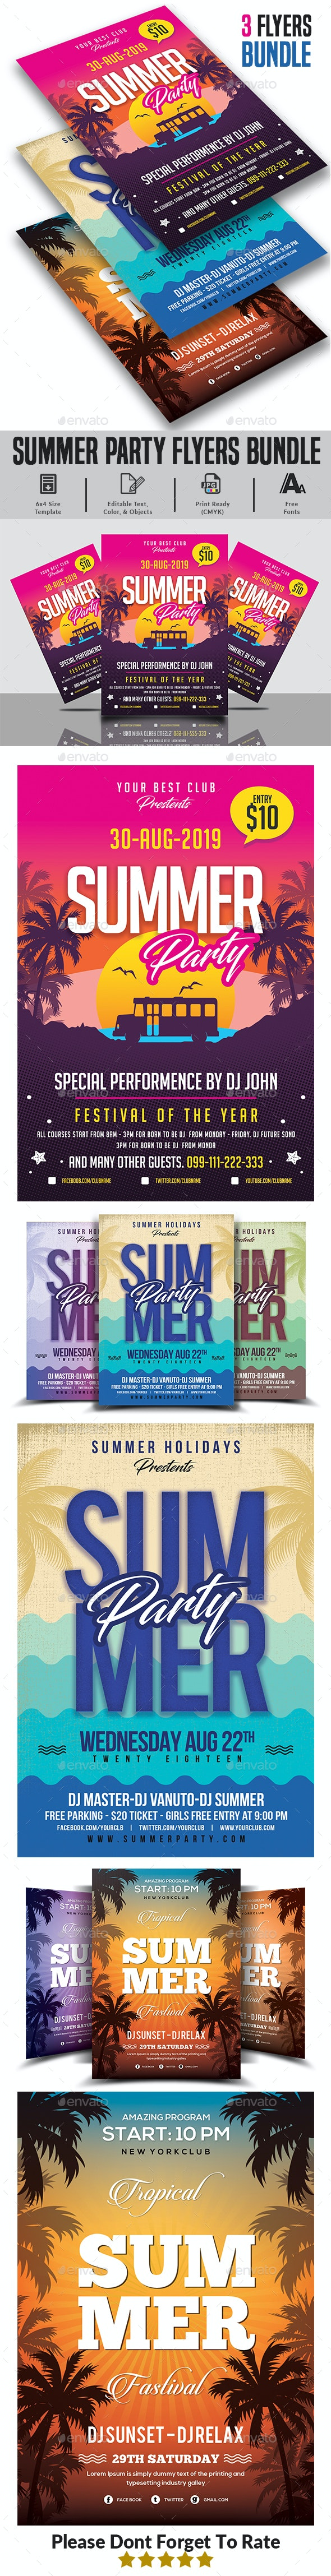 Summer Party Flyers Bundle Templates - Clubs & Parties Events